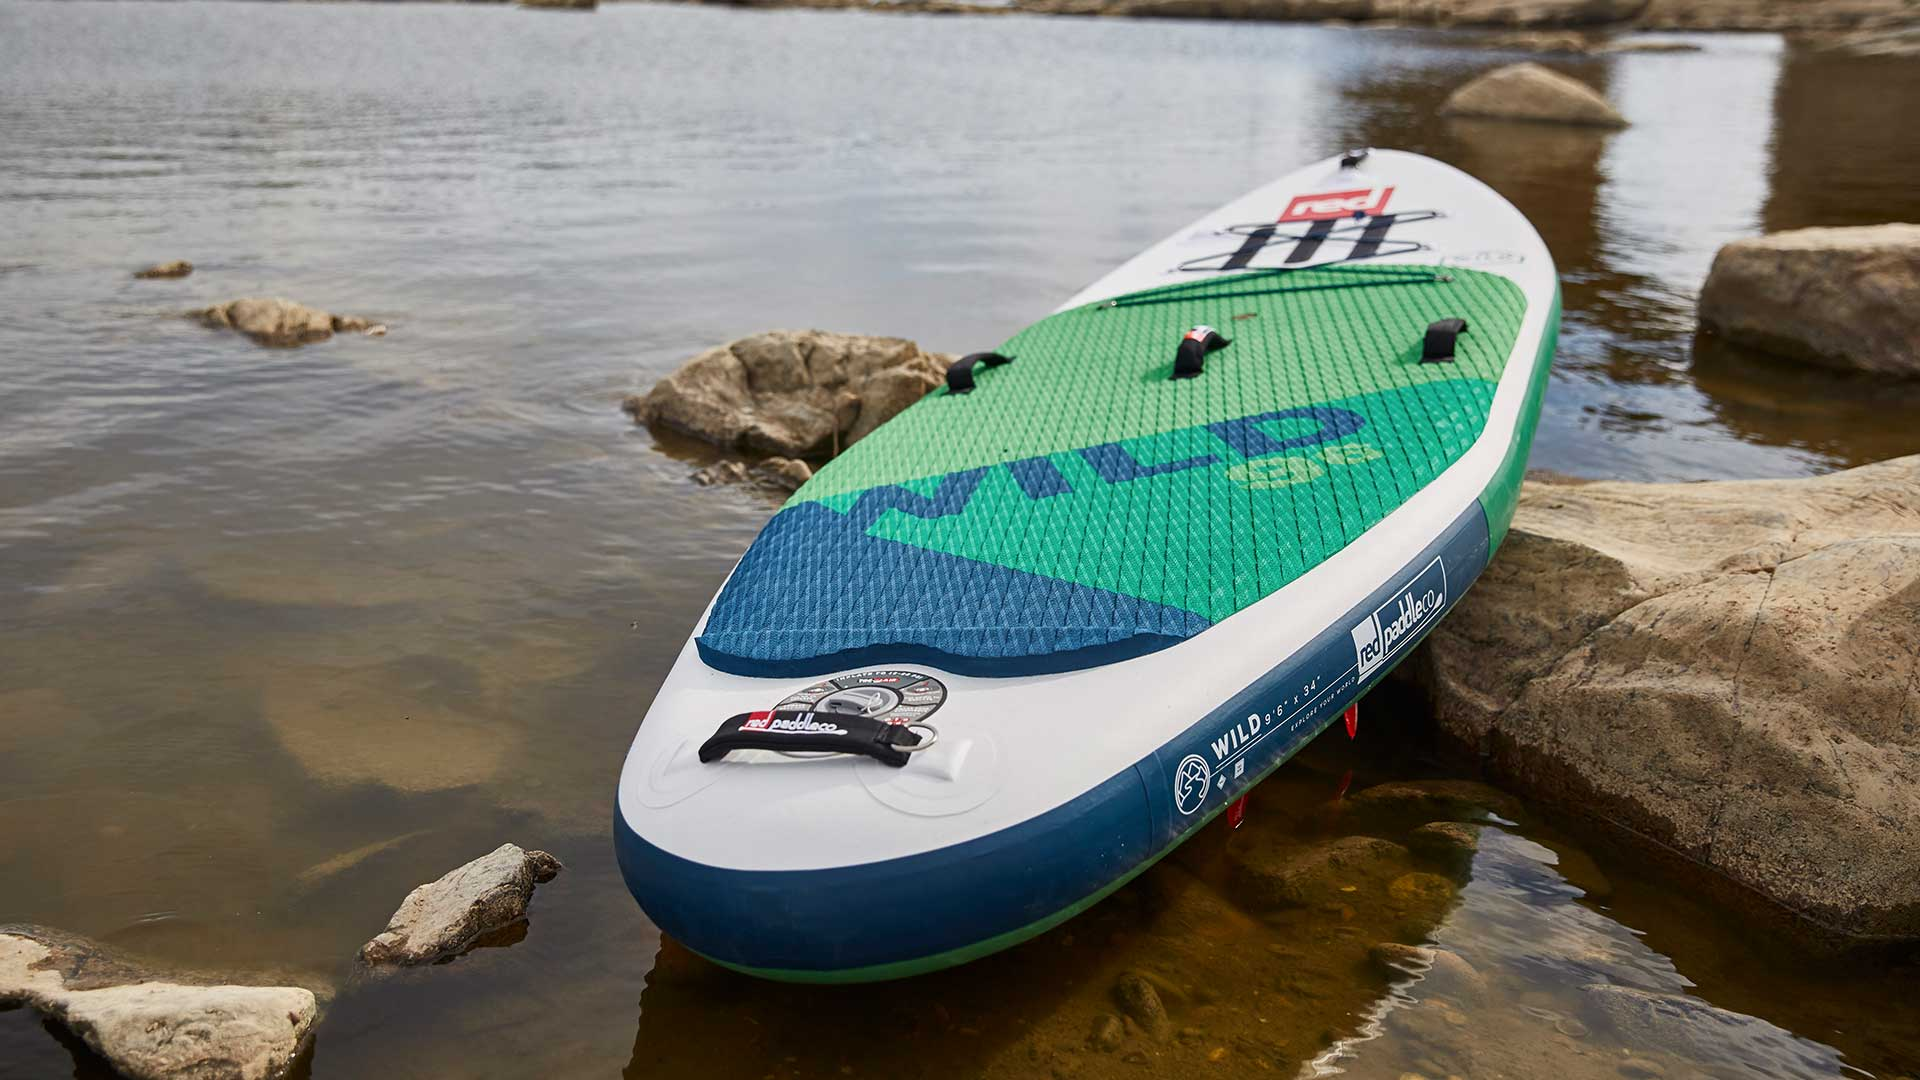 redpaddleco-96-wild-msl-inflatable-paddle-board-desktop-gallery-2